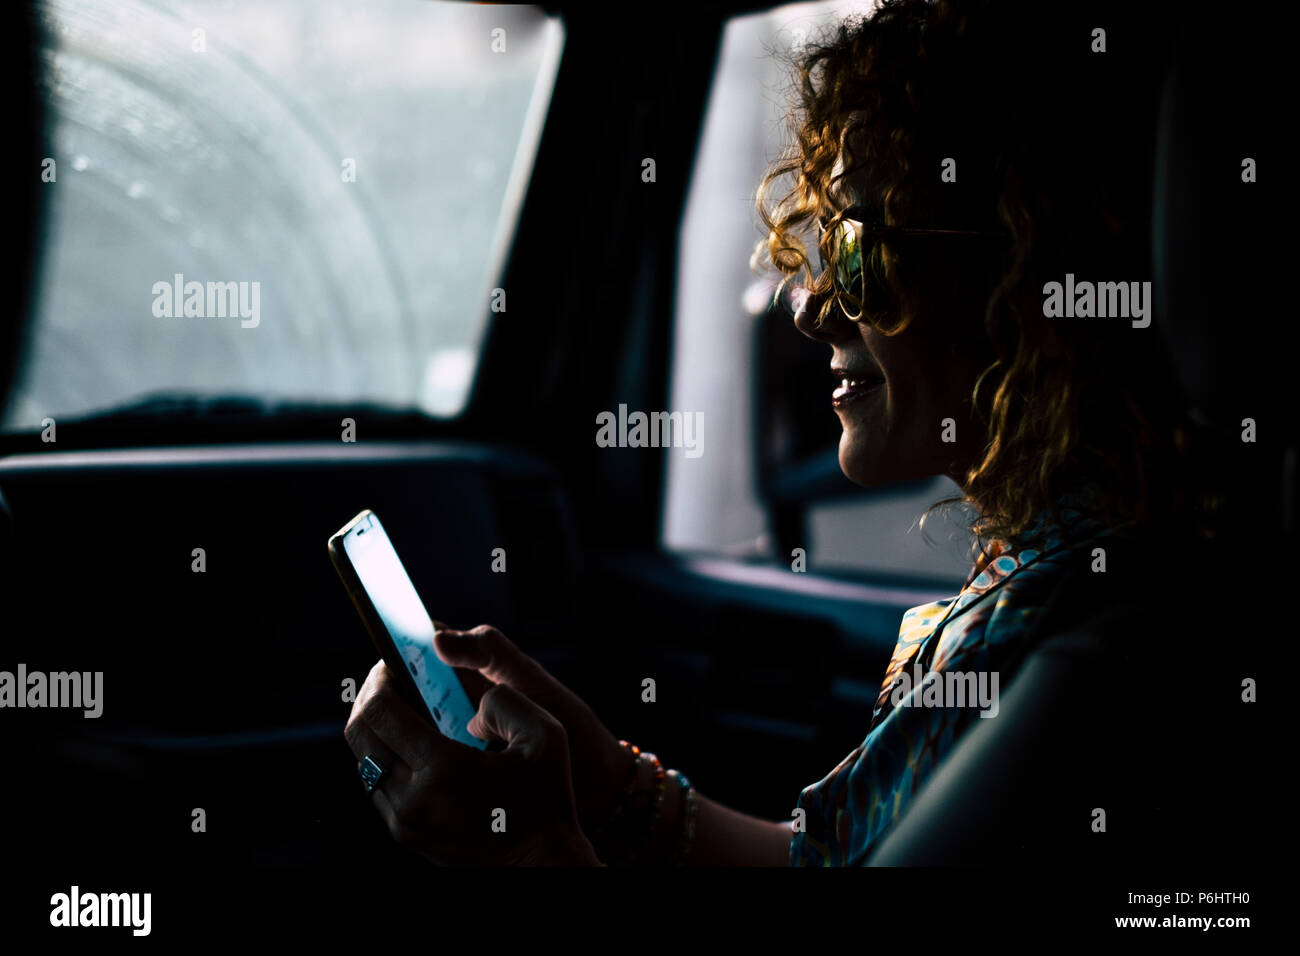 nice beautiful middle age woman travel inside a car shile rain outside. using a smartphone to connect and call friends and meet for the night to celeb - Stock Image